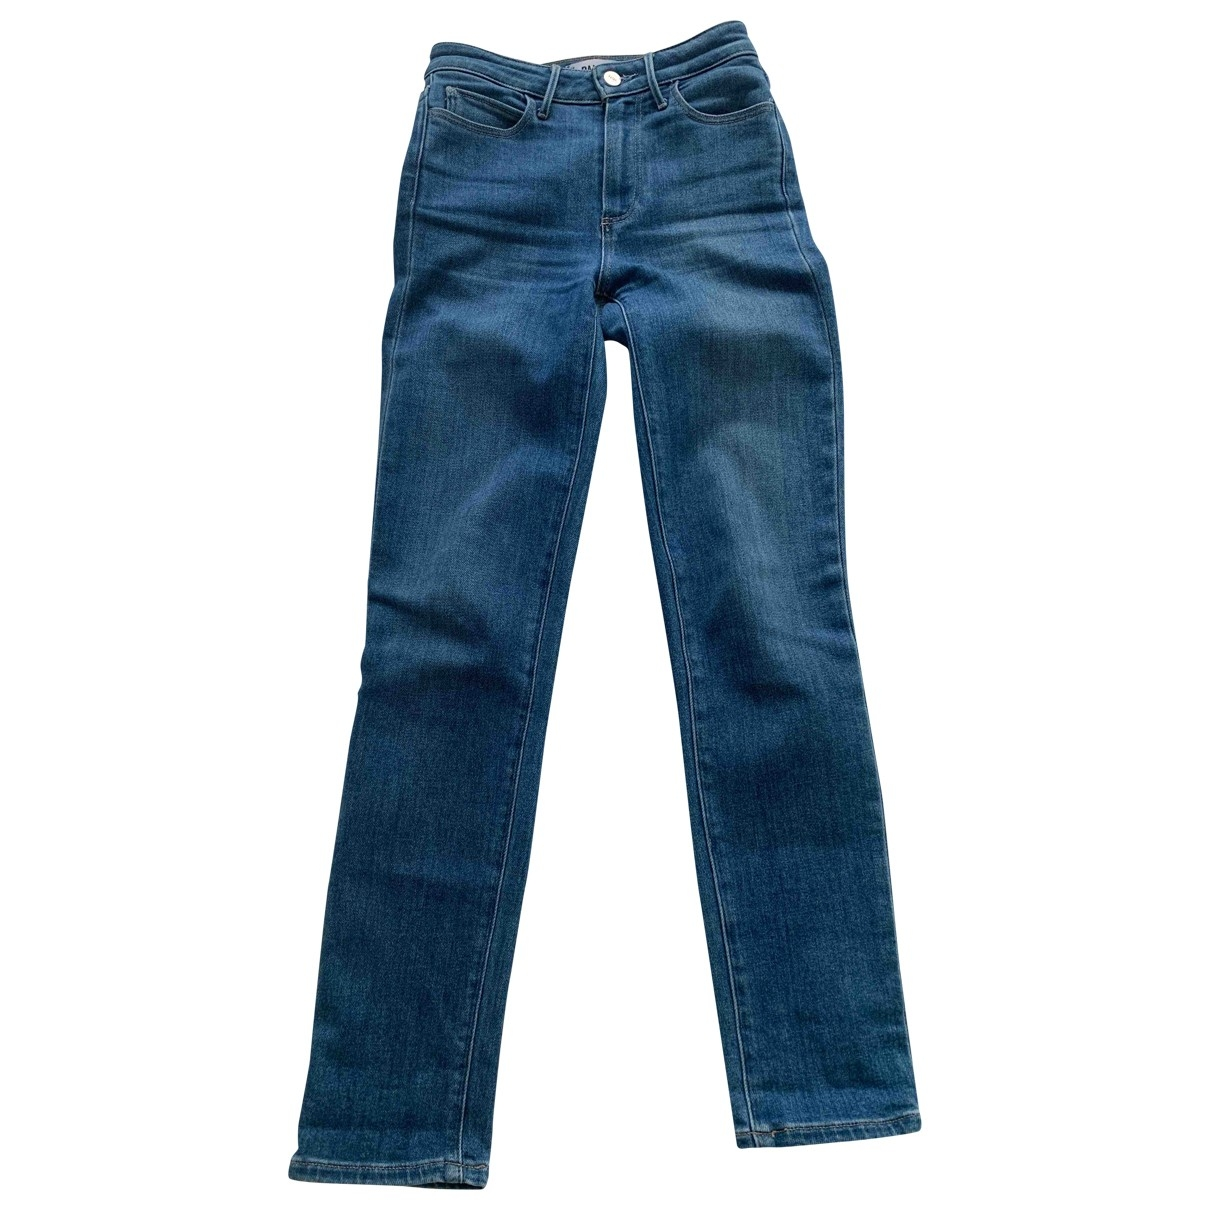 Paige Jeans \N Blue Cotton - elasthane Jeans for Women 24 US